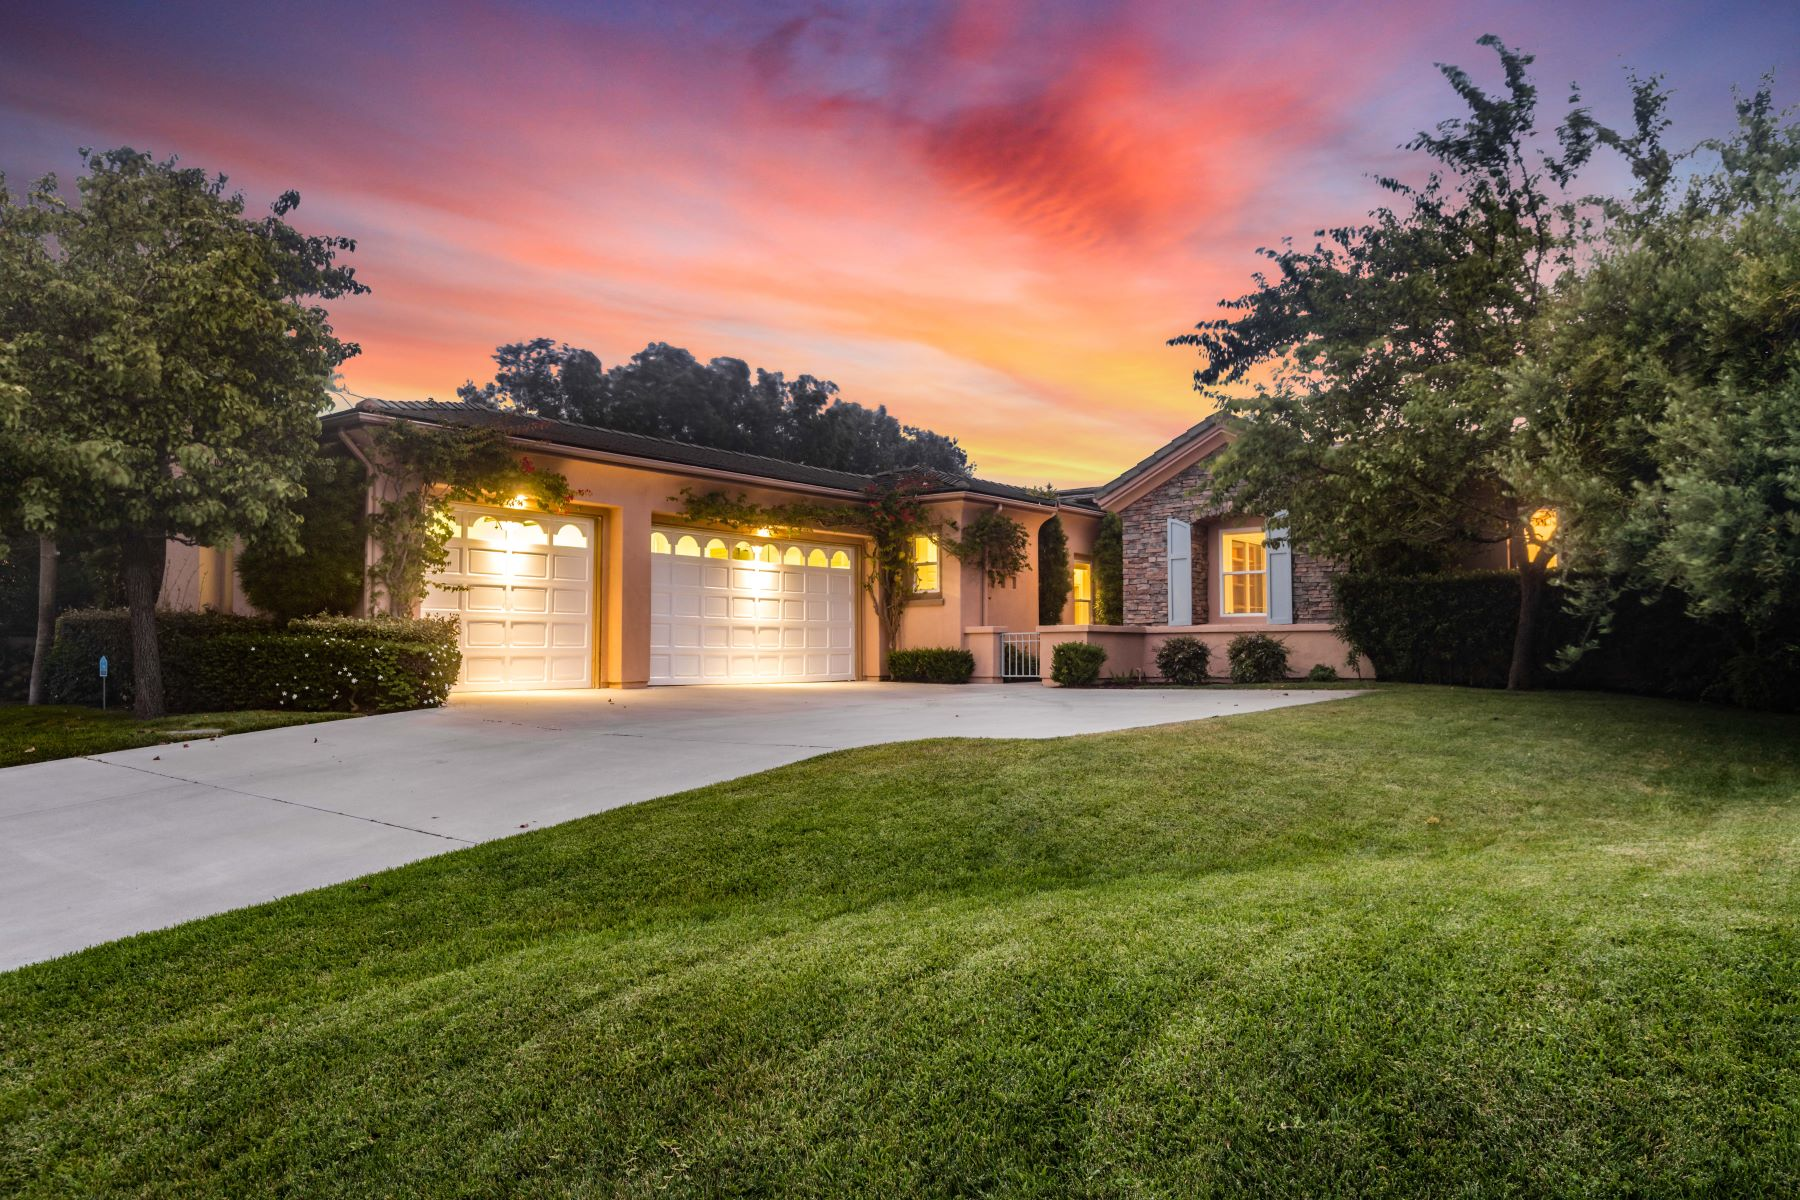 Single Family Homes for Sale at 68 Sea Breeze Avenue, Rancho Palos Verdes, CA 90275 68 Sea Breeze Avenue Rancho Palos Verdes, California 90275 United States